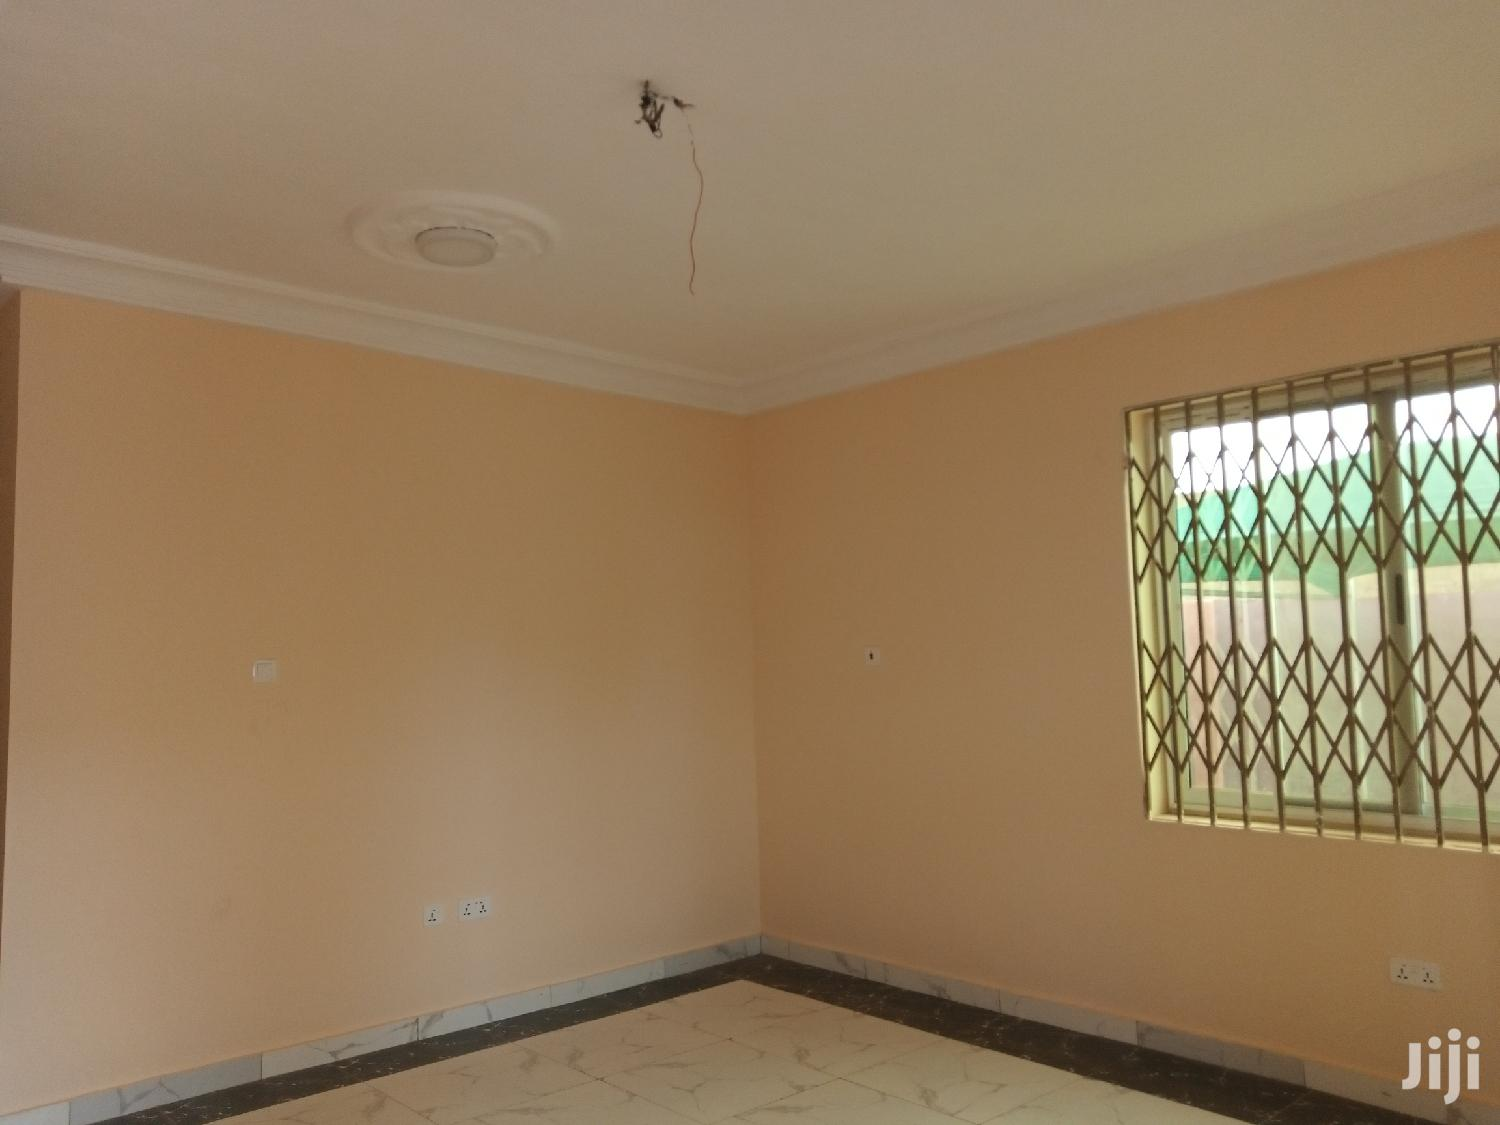 Executive Newly Built 2bedroom Apartments For Rent Tse-addo | Houses & Apartments For Rent for sale in Ledzokuku-Krowor, Greater Accra, Ghana